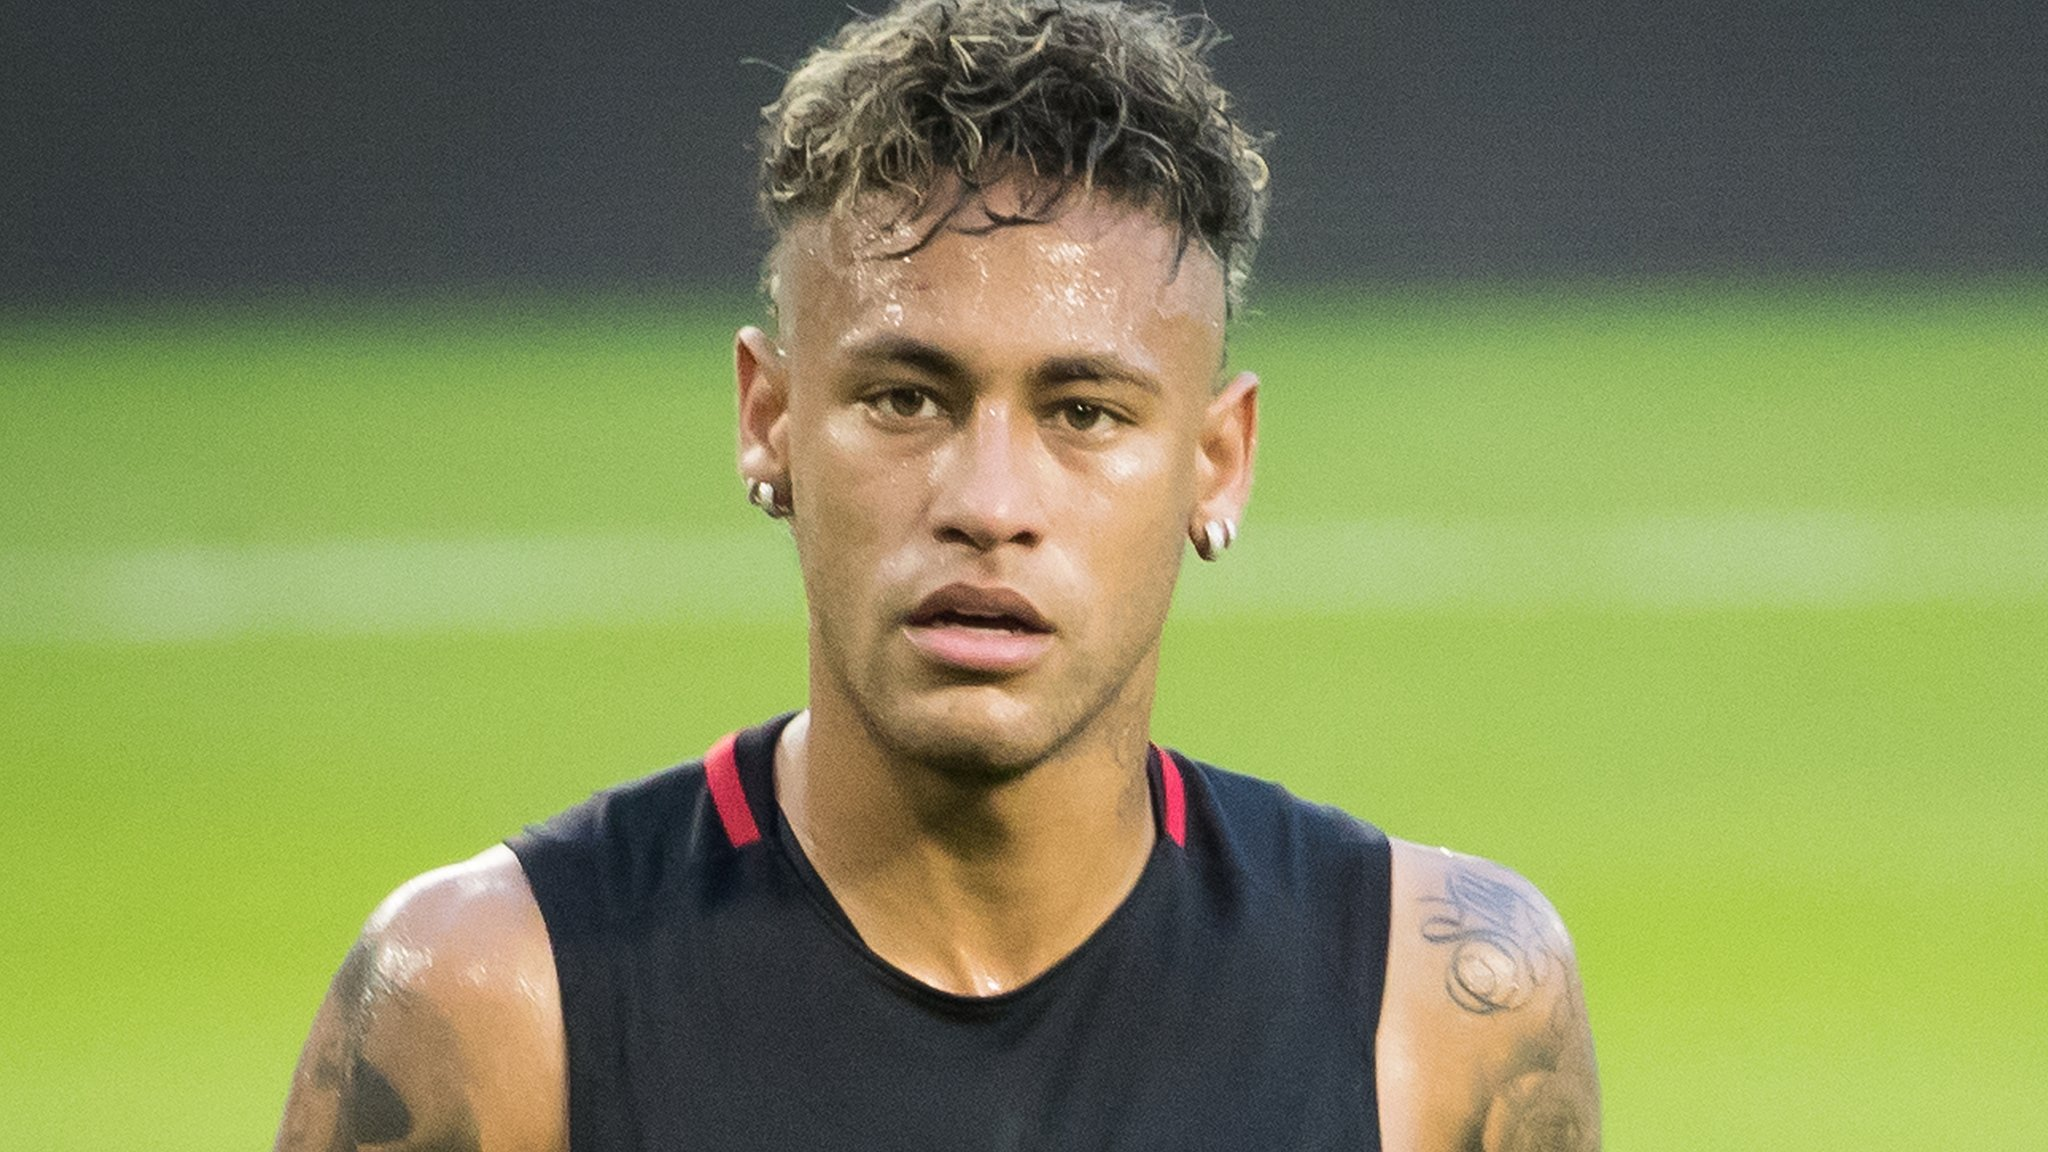 Champions League: Neymar charged for comments after loss to Man Utd